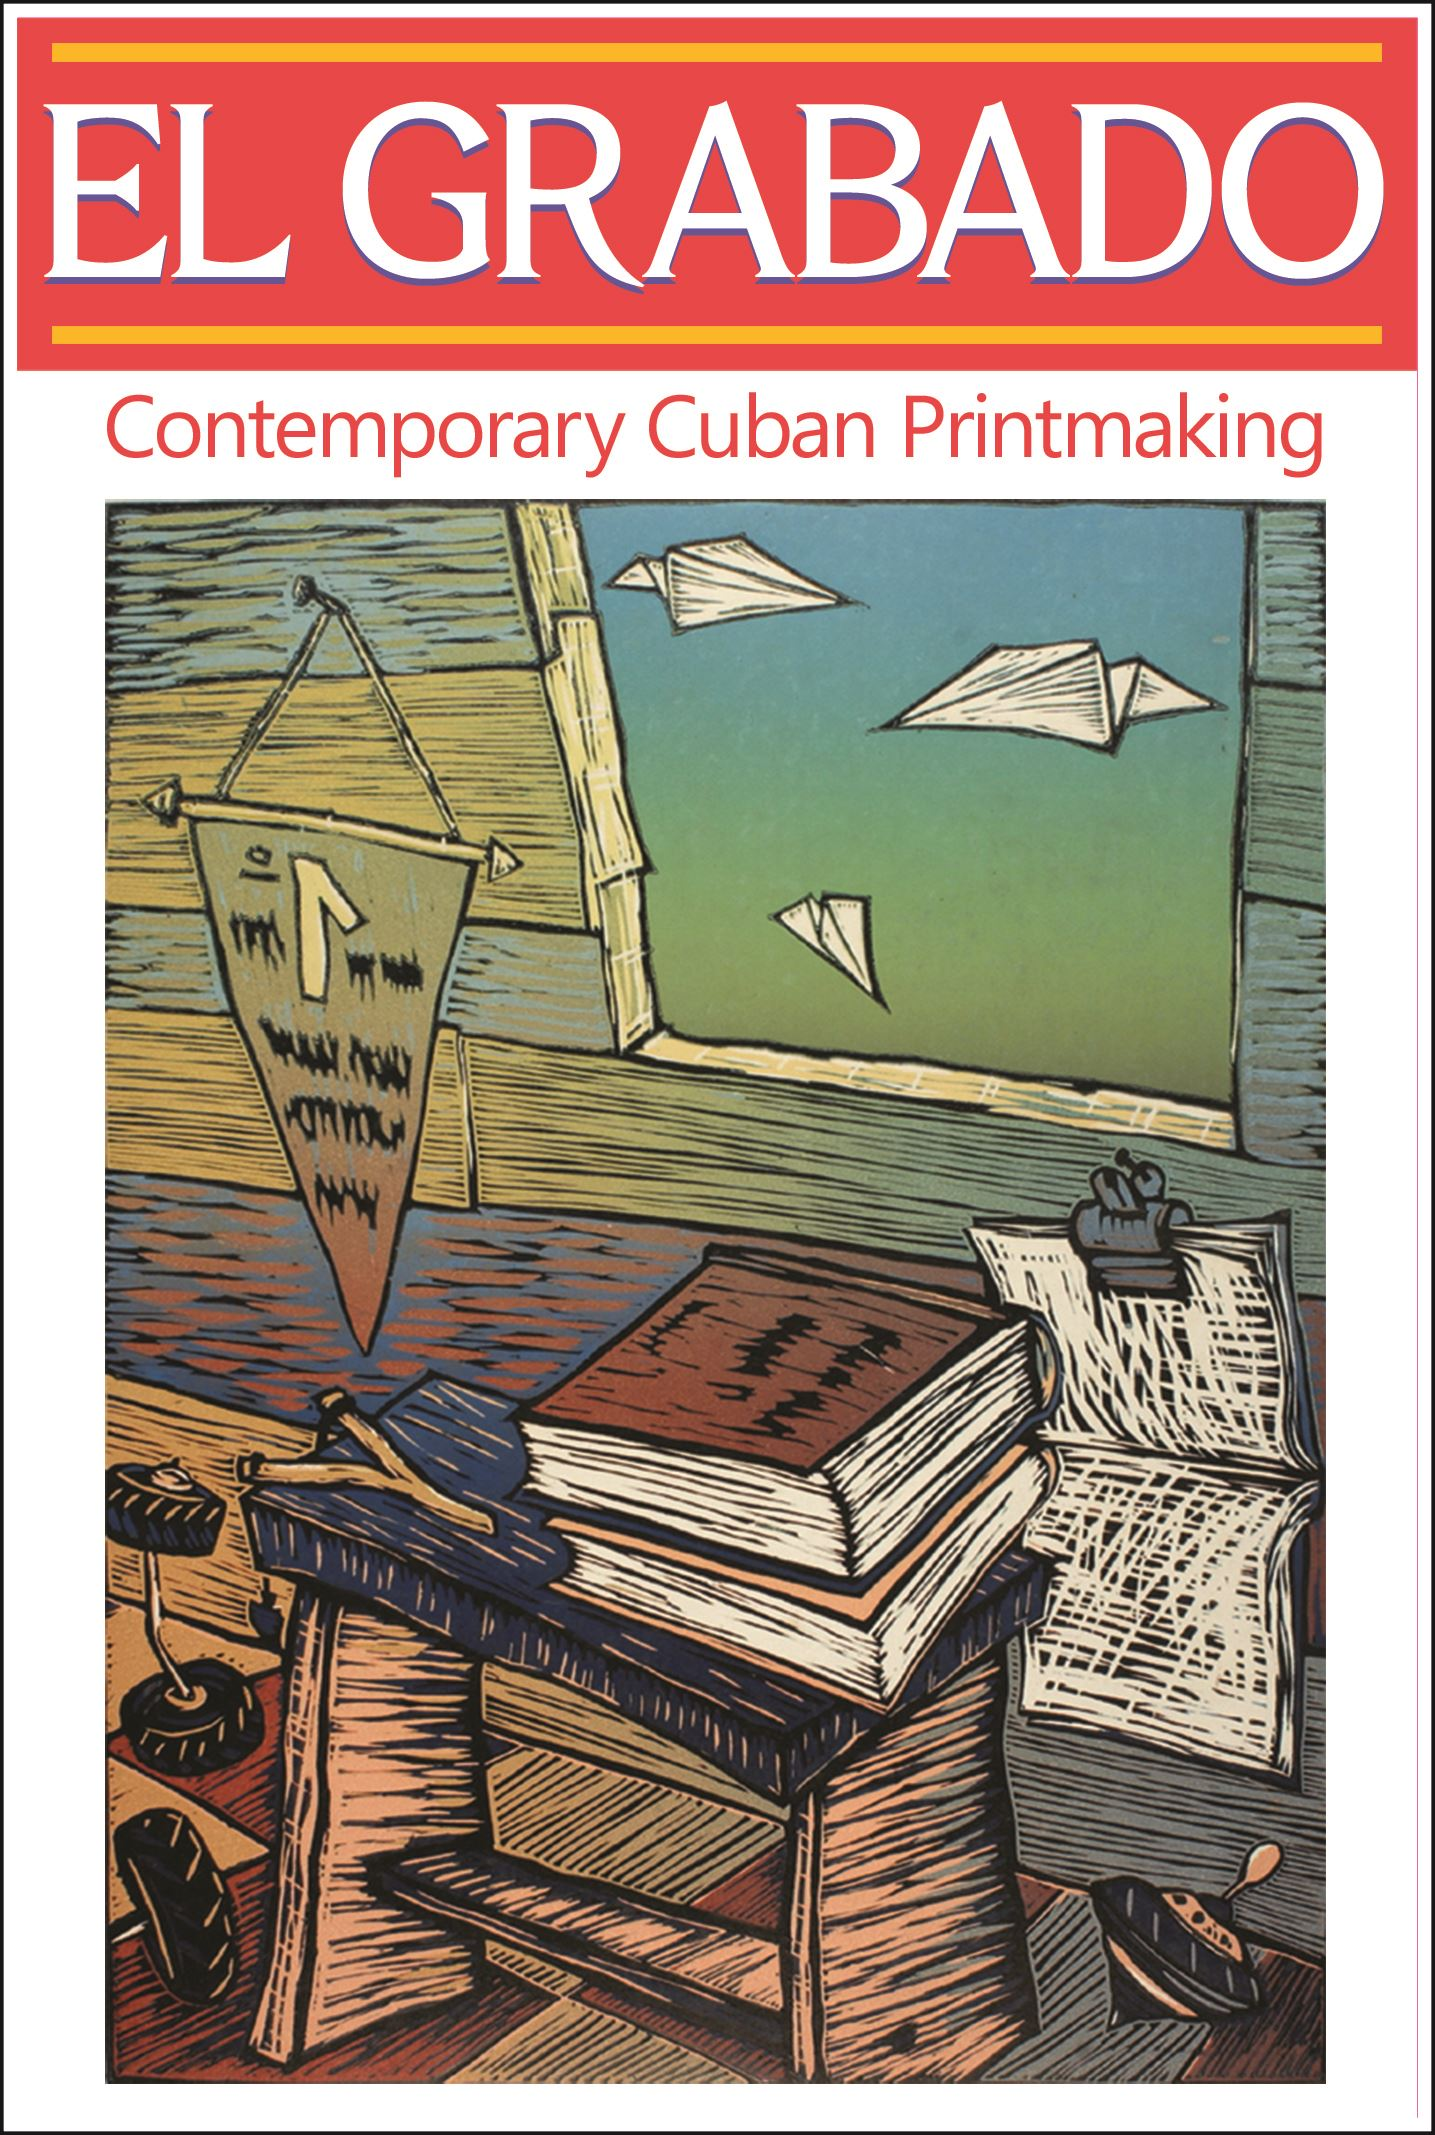 El Grabado: Contemporary Cuban Printmaking identity